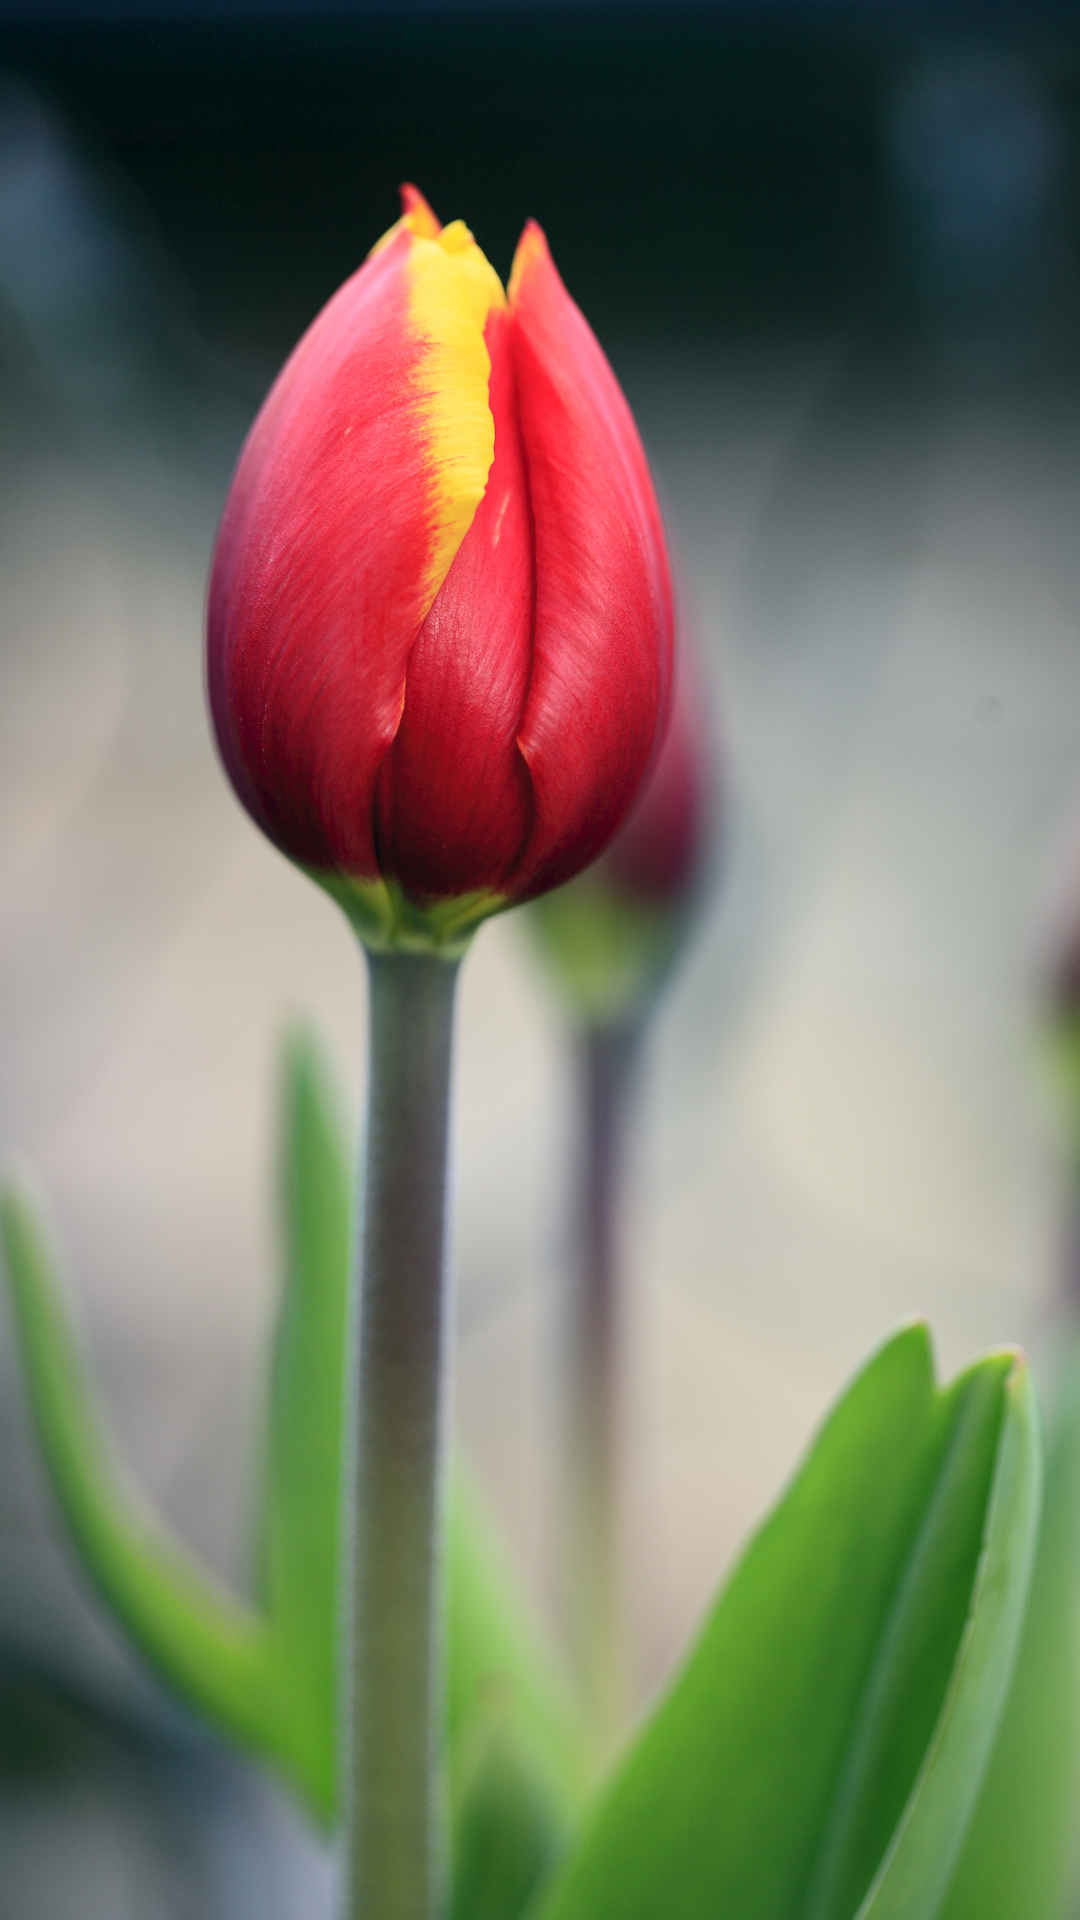 Red tulip htc wallpaper